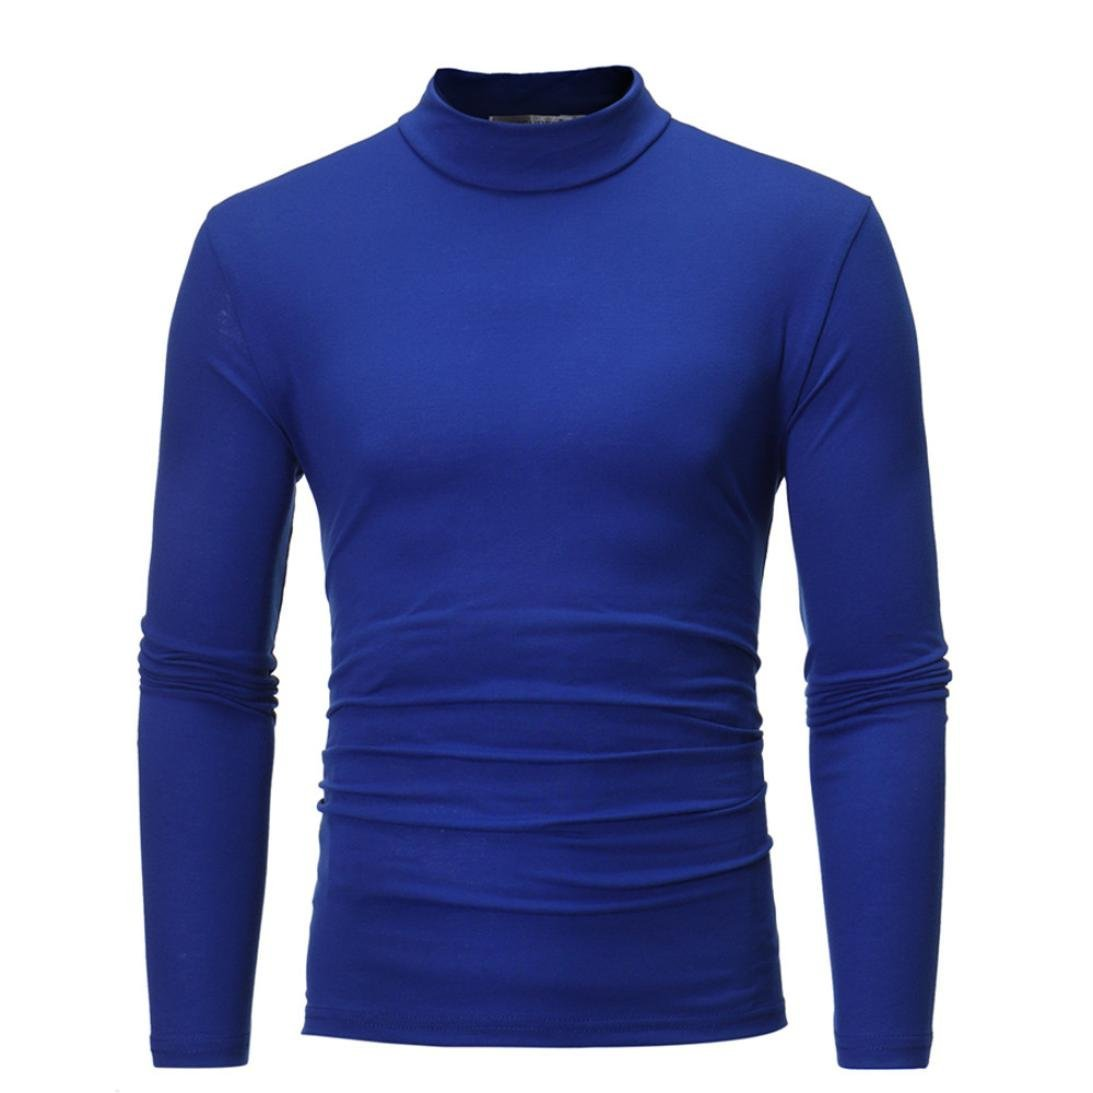 53f727652 ♛♛Material: Polyester ♛♛Pattern Type: Pure Color. ♛♛Neckline:Turtleneck  ♛♛Occasion: Daily,Casual ♛♛Soft touch and breathable fabric is perfect for  ...